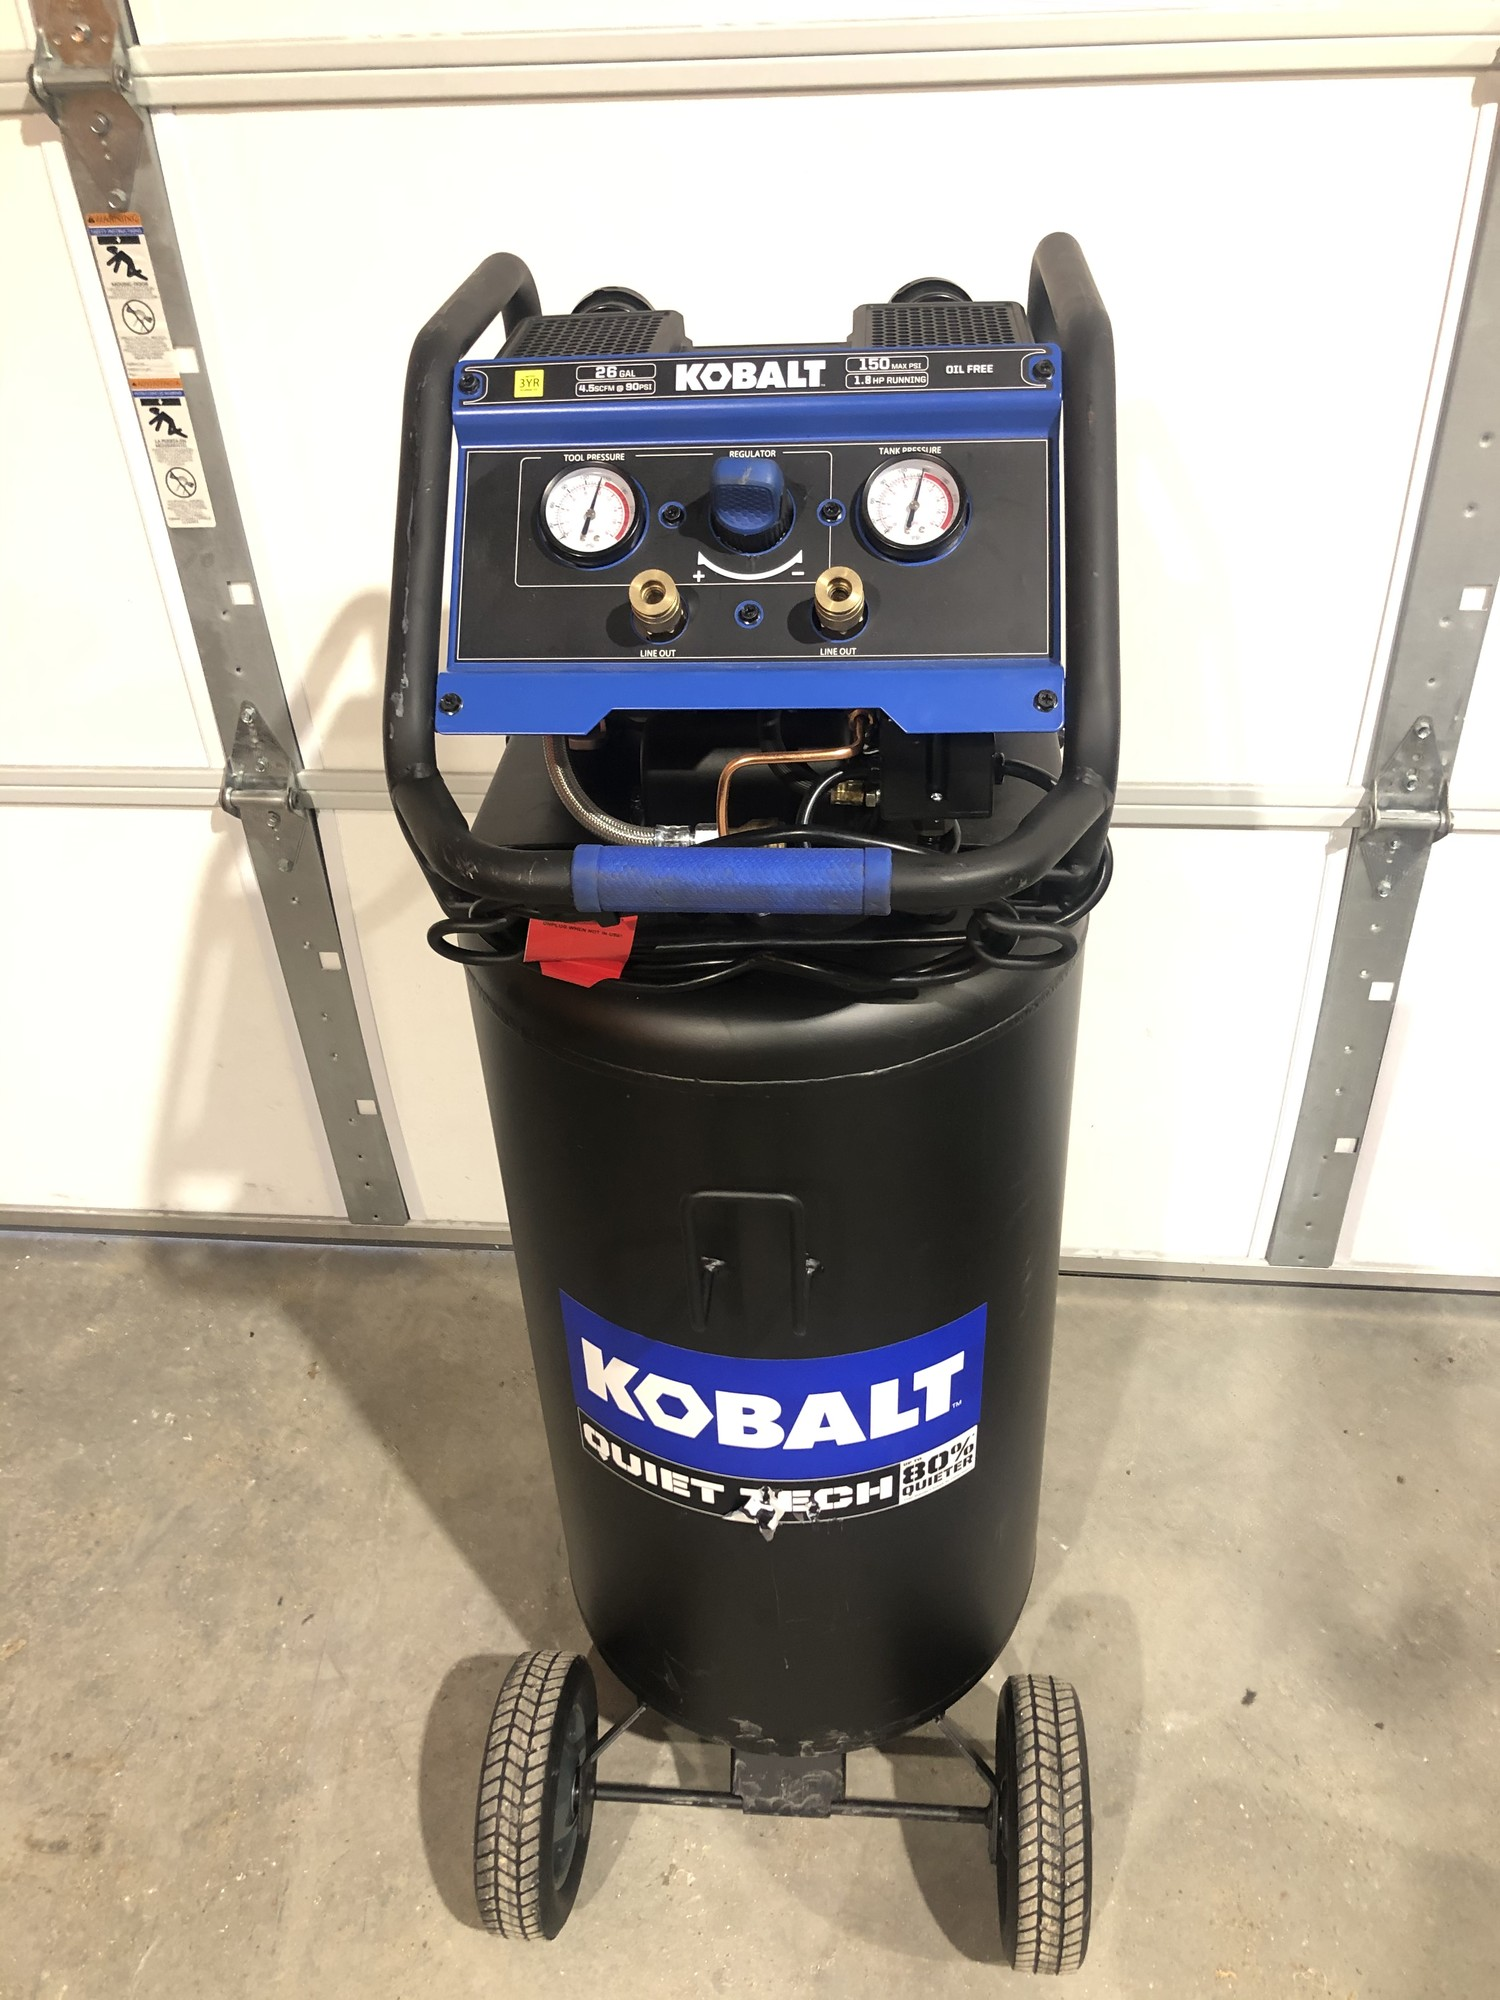 Kobalt QUIET TECH 26-Gallon 150-PSI Single Stage Portable Electric Vertical Air Compressor